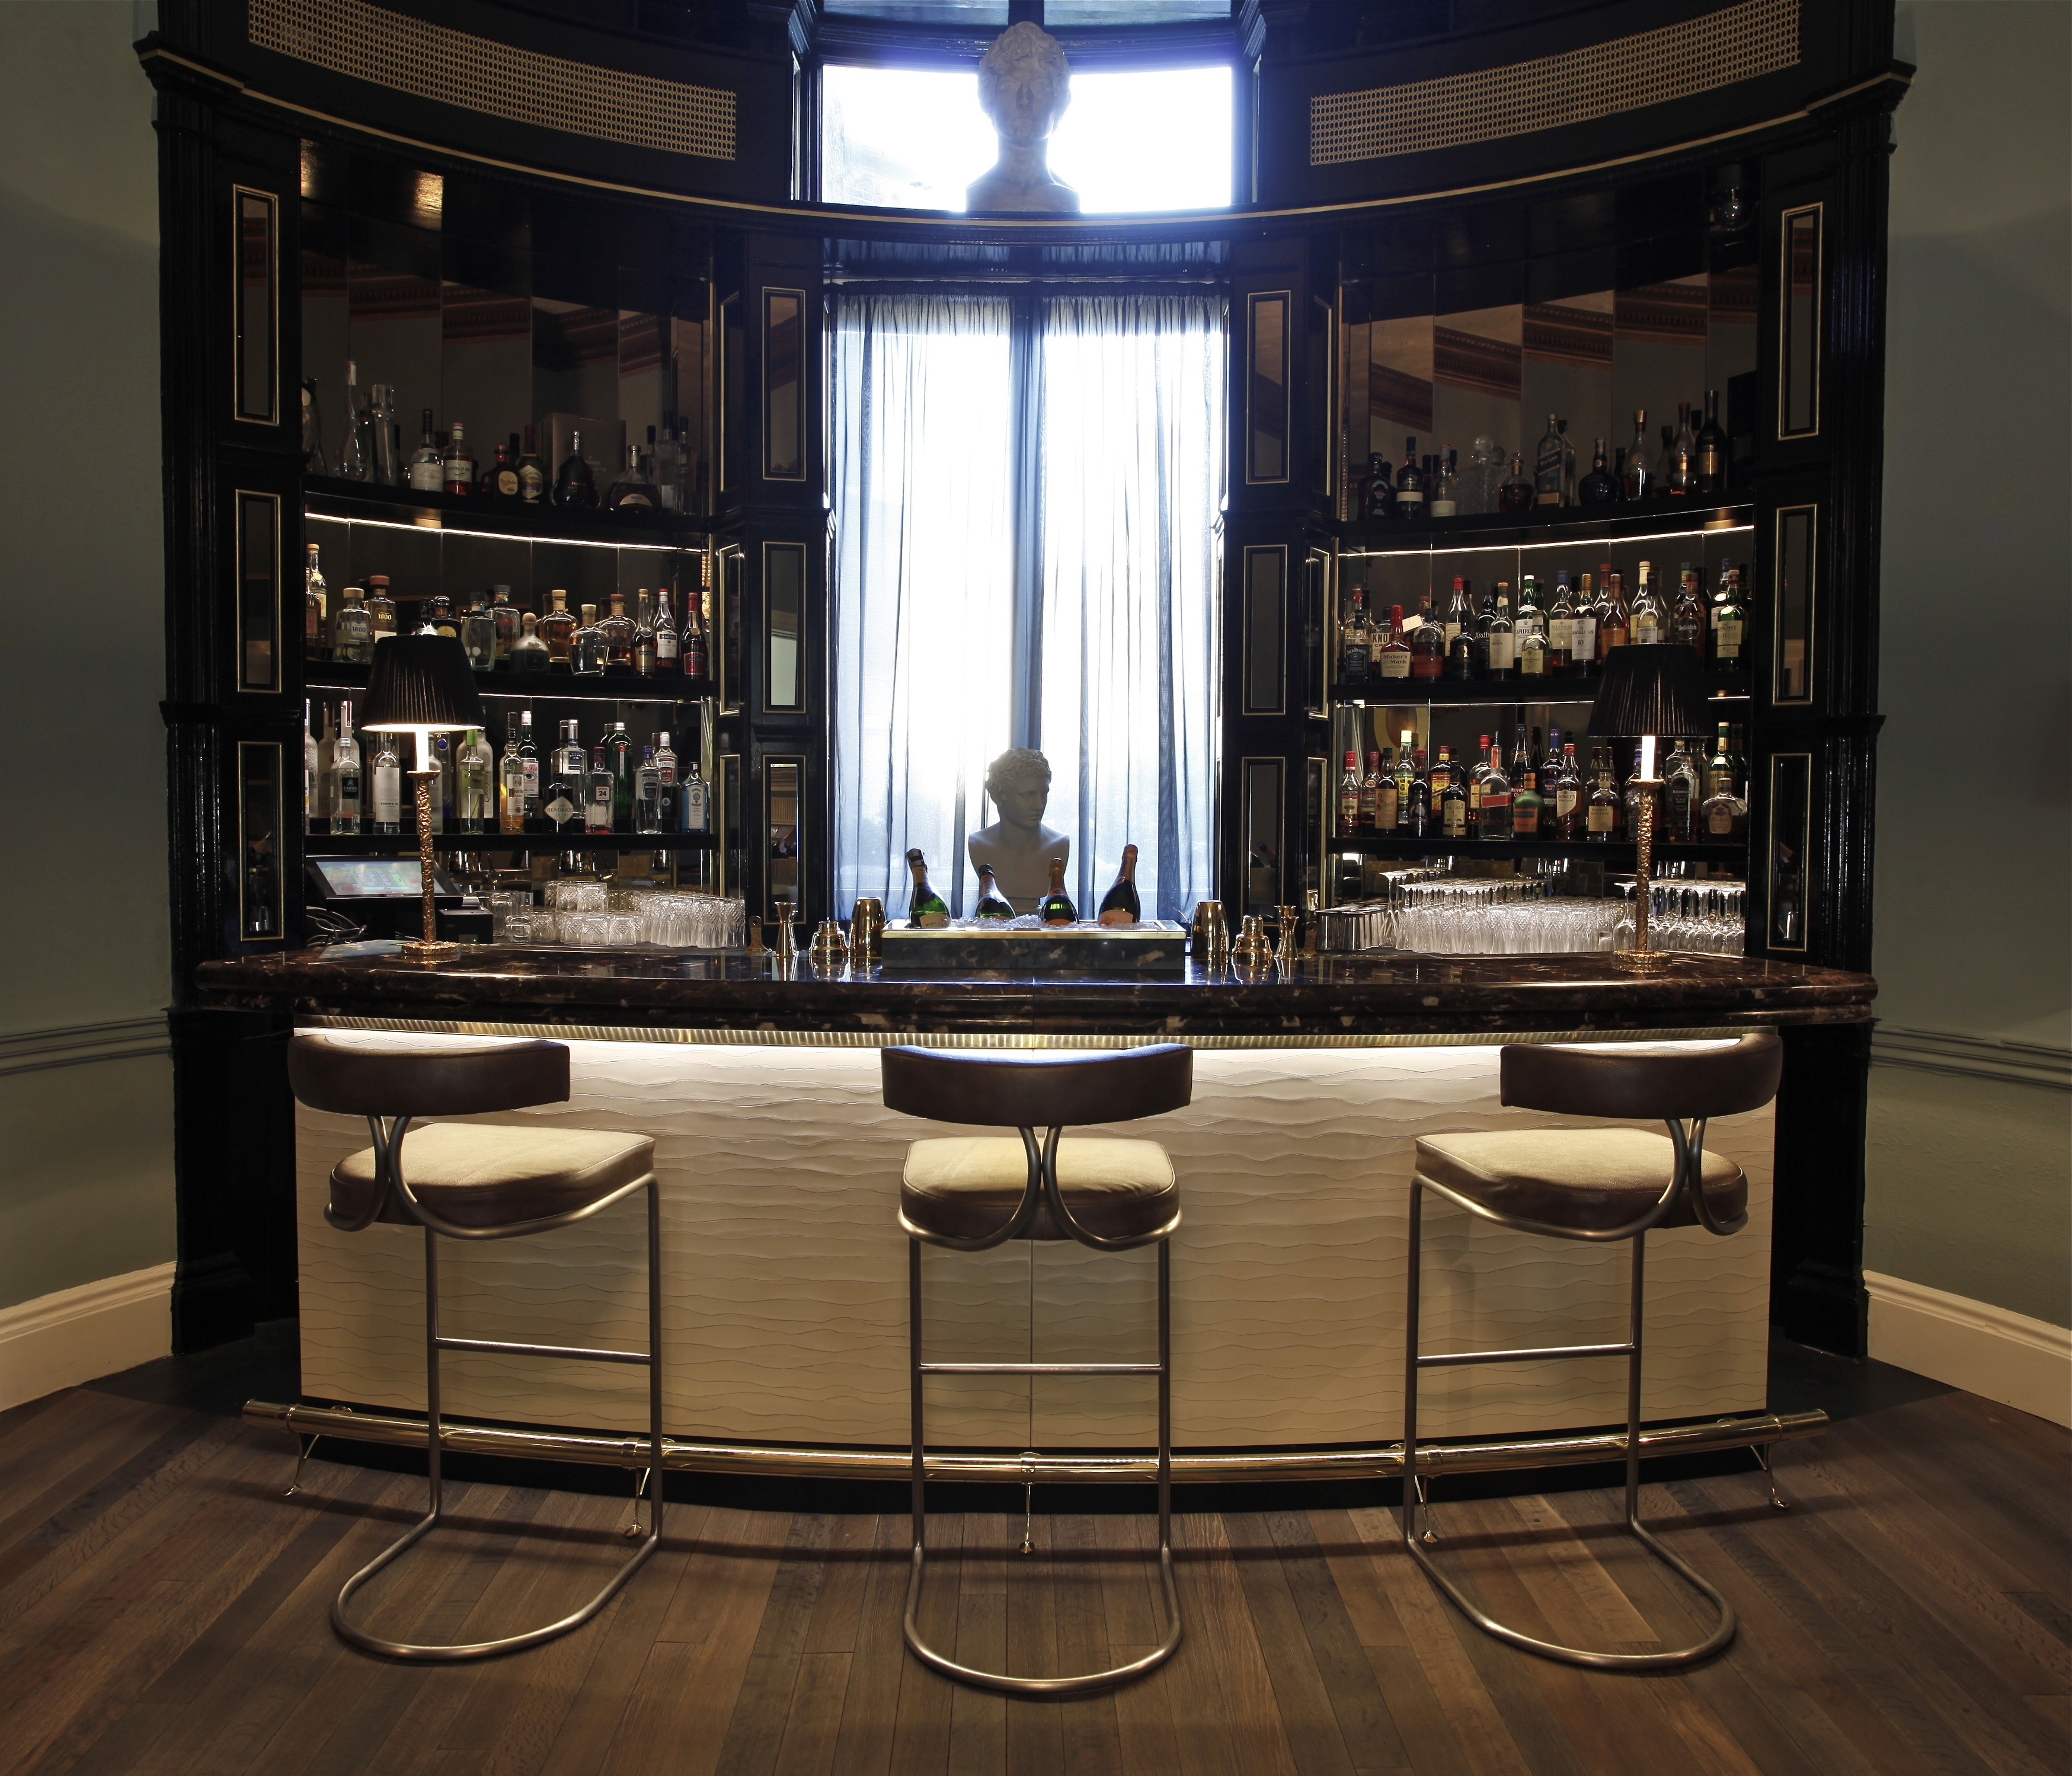 Stunning awesome home bars pics design ideas dievoon - Awesome home bar ...